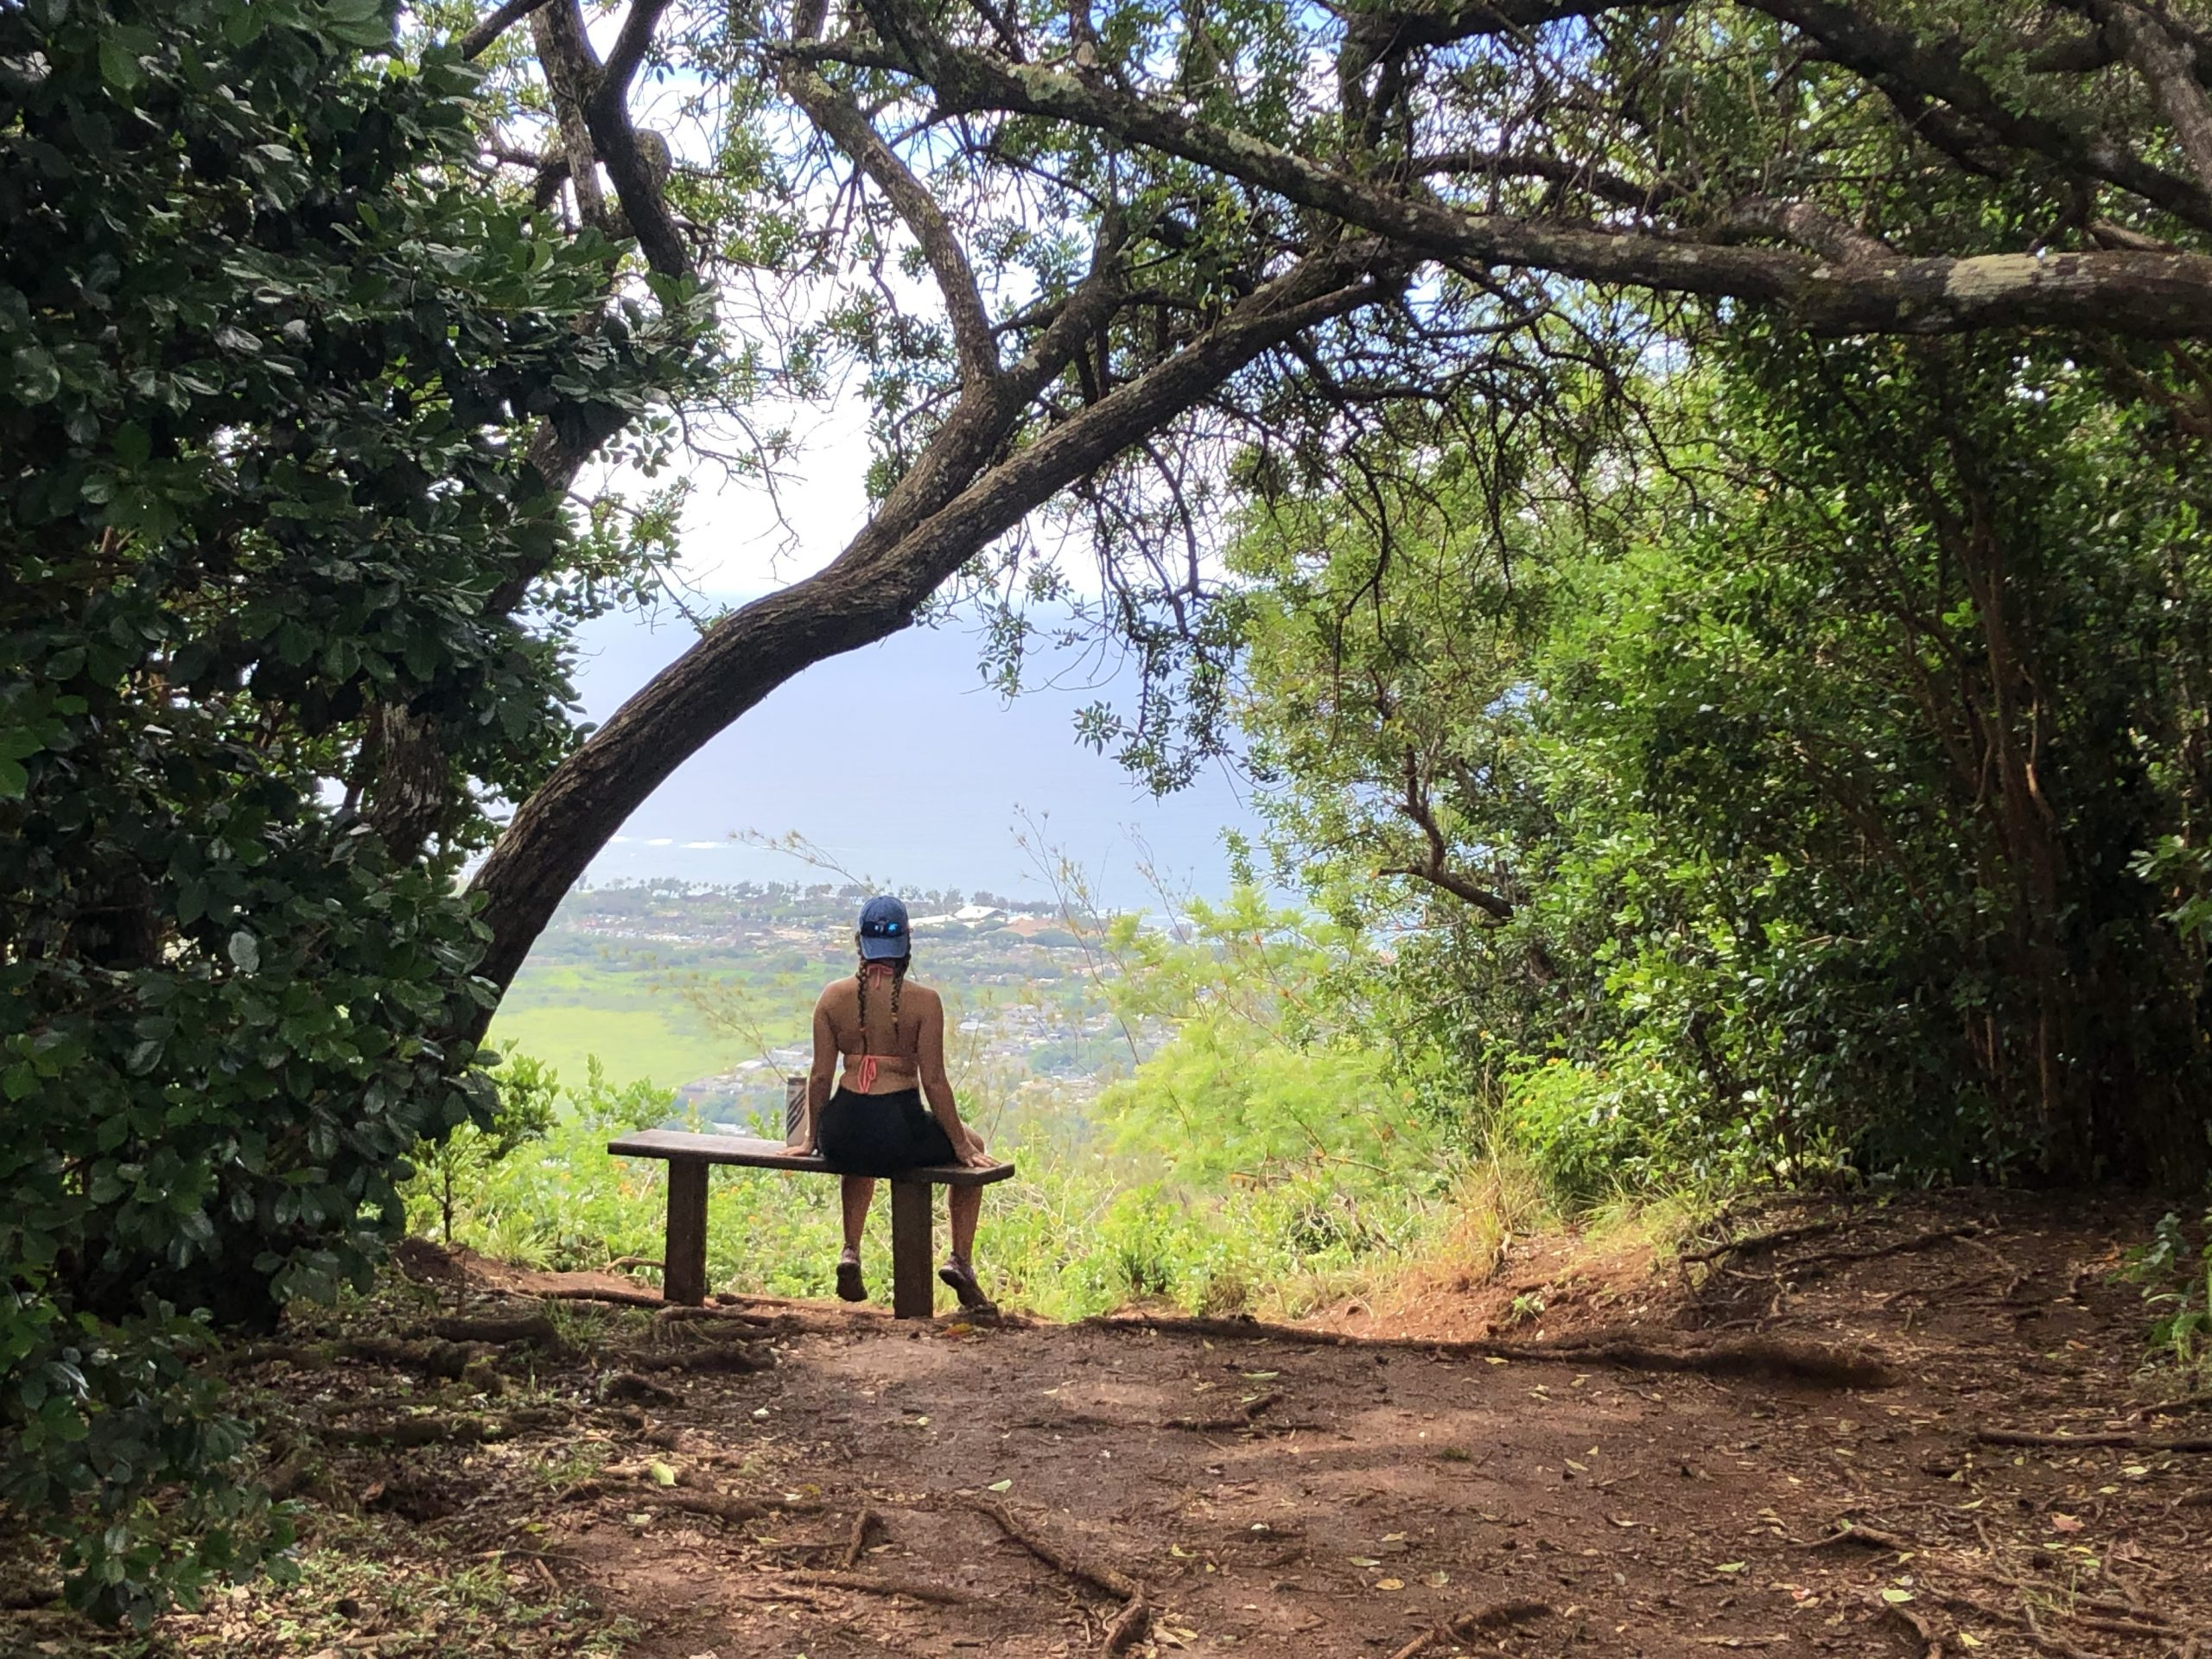 Hiking Up Sleeping Giant – Kauai, Hawaii